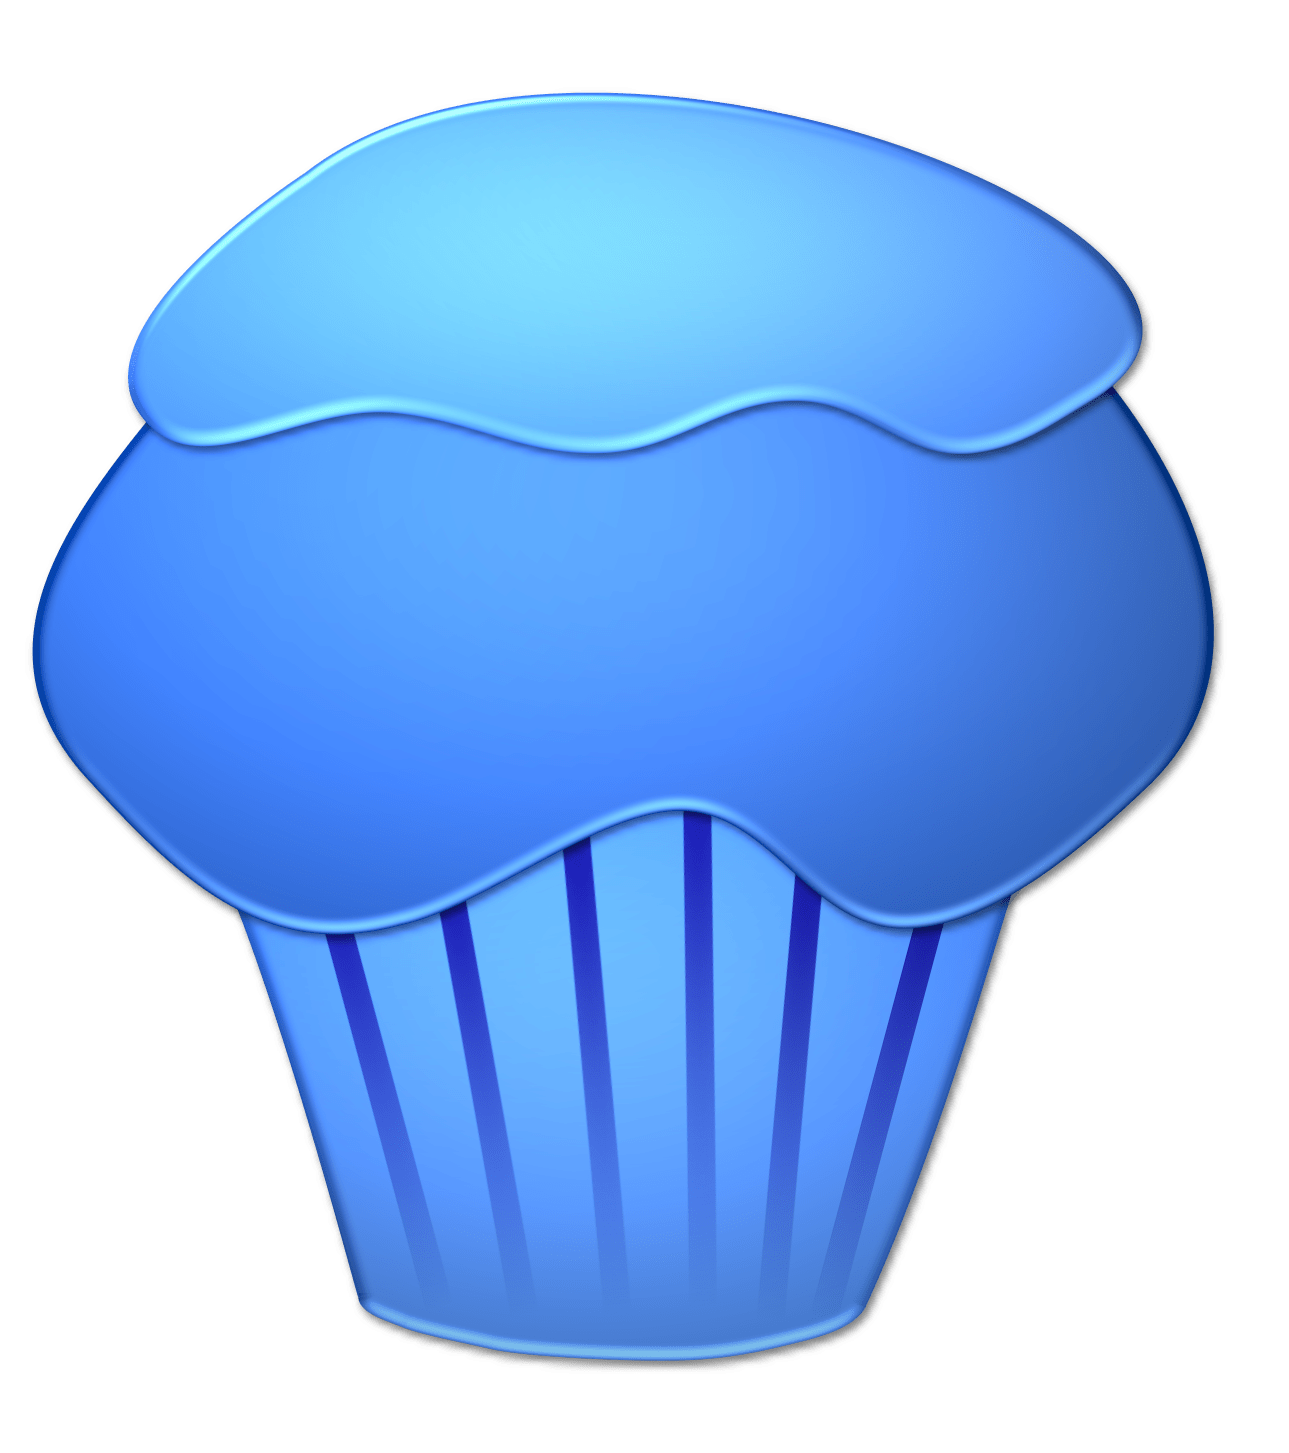 hight resolution of blueberry cupcake